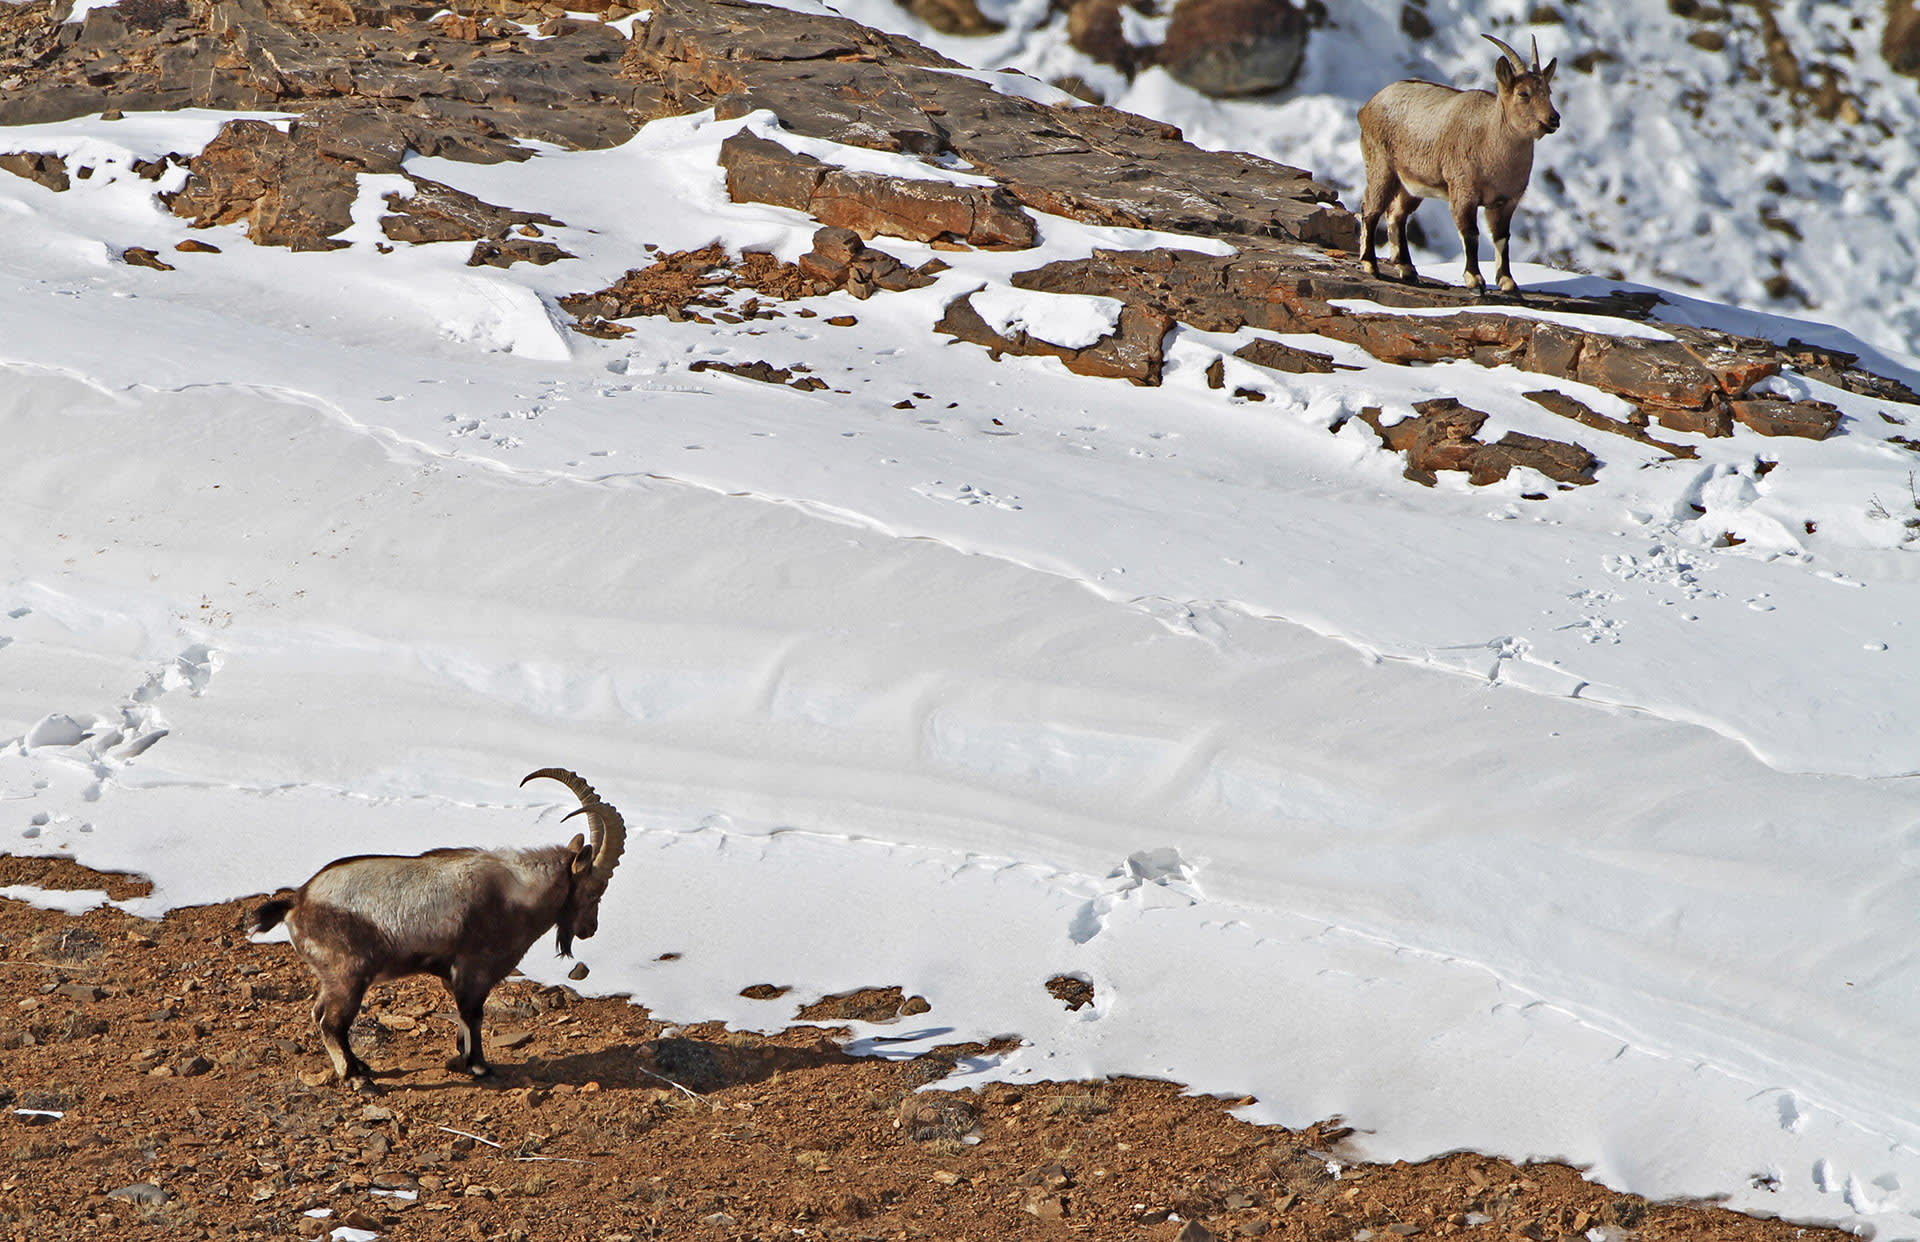 The Himalayan ibex's most striking feature is its huge, curved horns, characterised by notches in the front. Its fur ranges from pale to dark brown, and varies in thickness according to the season. Photo: Dhritiman Mukherjee